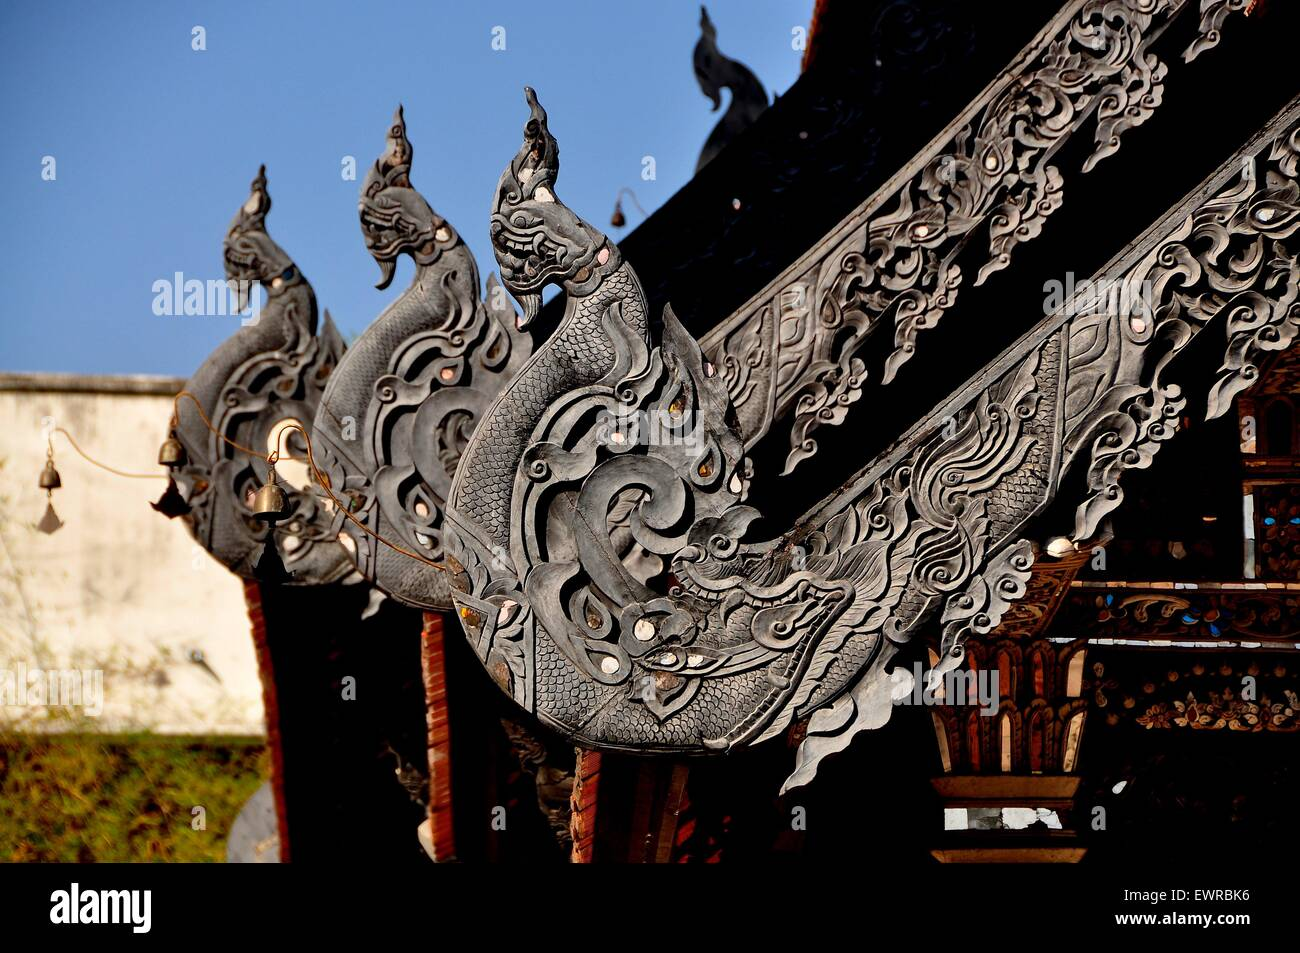 Chiang Mai Thailand Exquisite carved teak wood roof dragons decorate the Vihan at Wat Chedi Luang & Chiang Mai Thailand: Exquisite carved teak wood roof dragons ... memphite.com